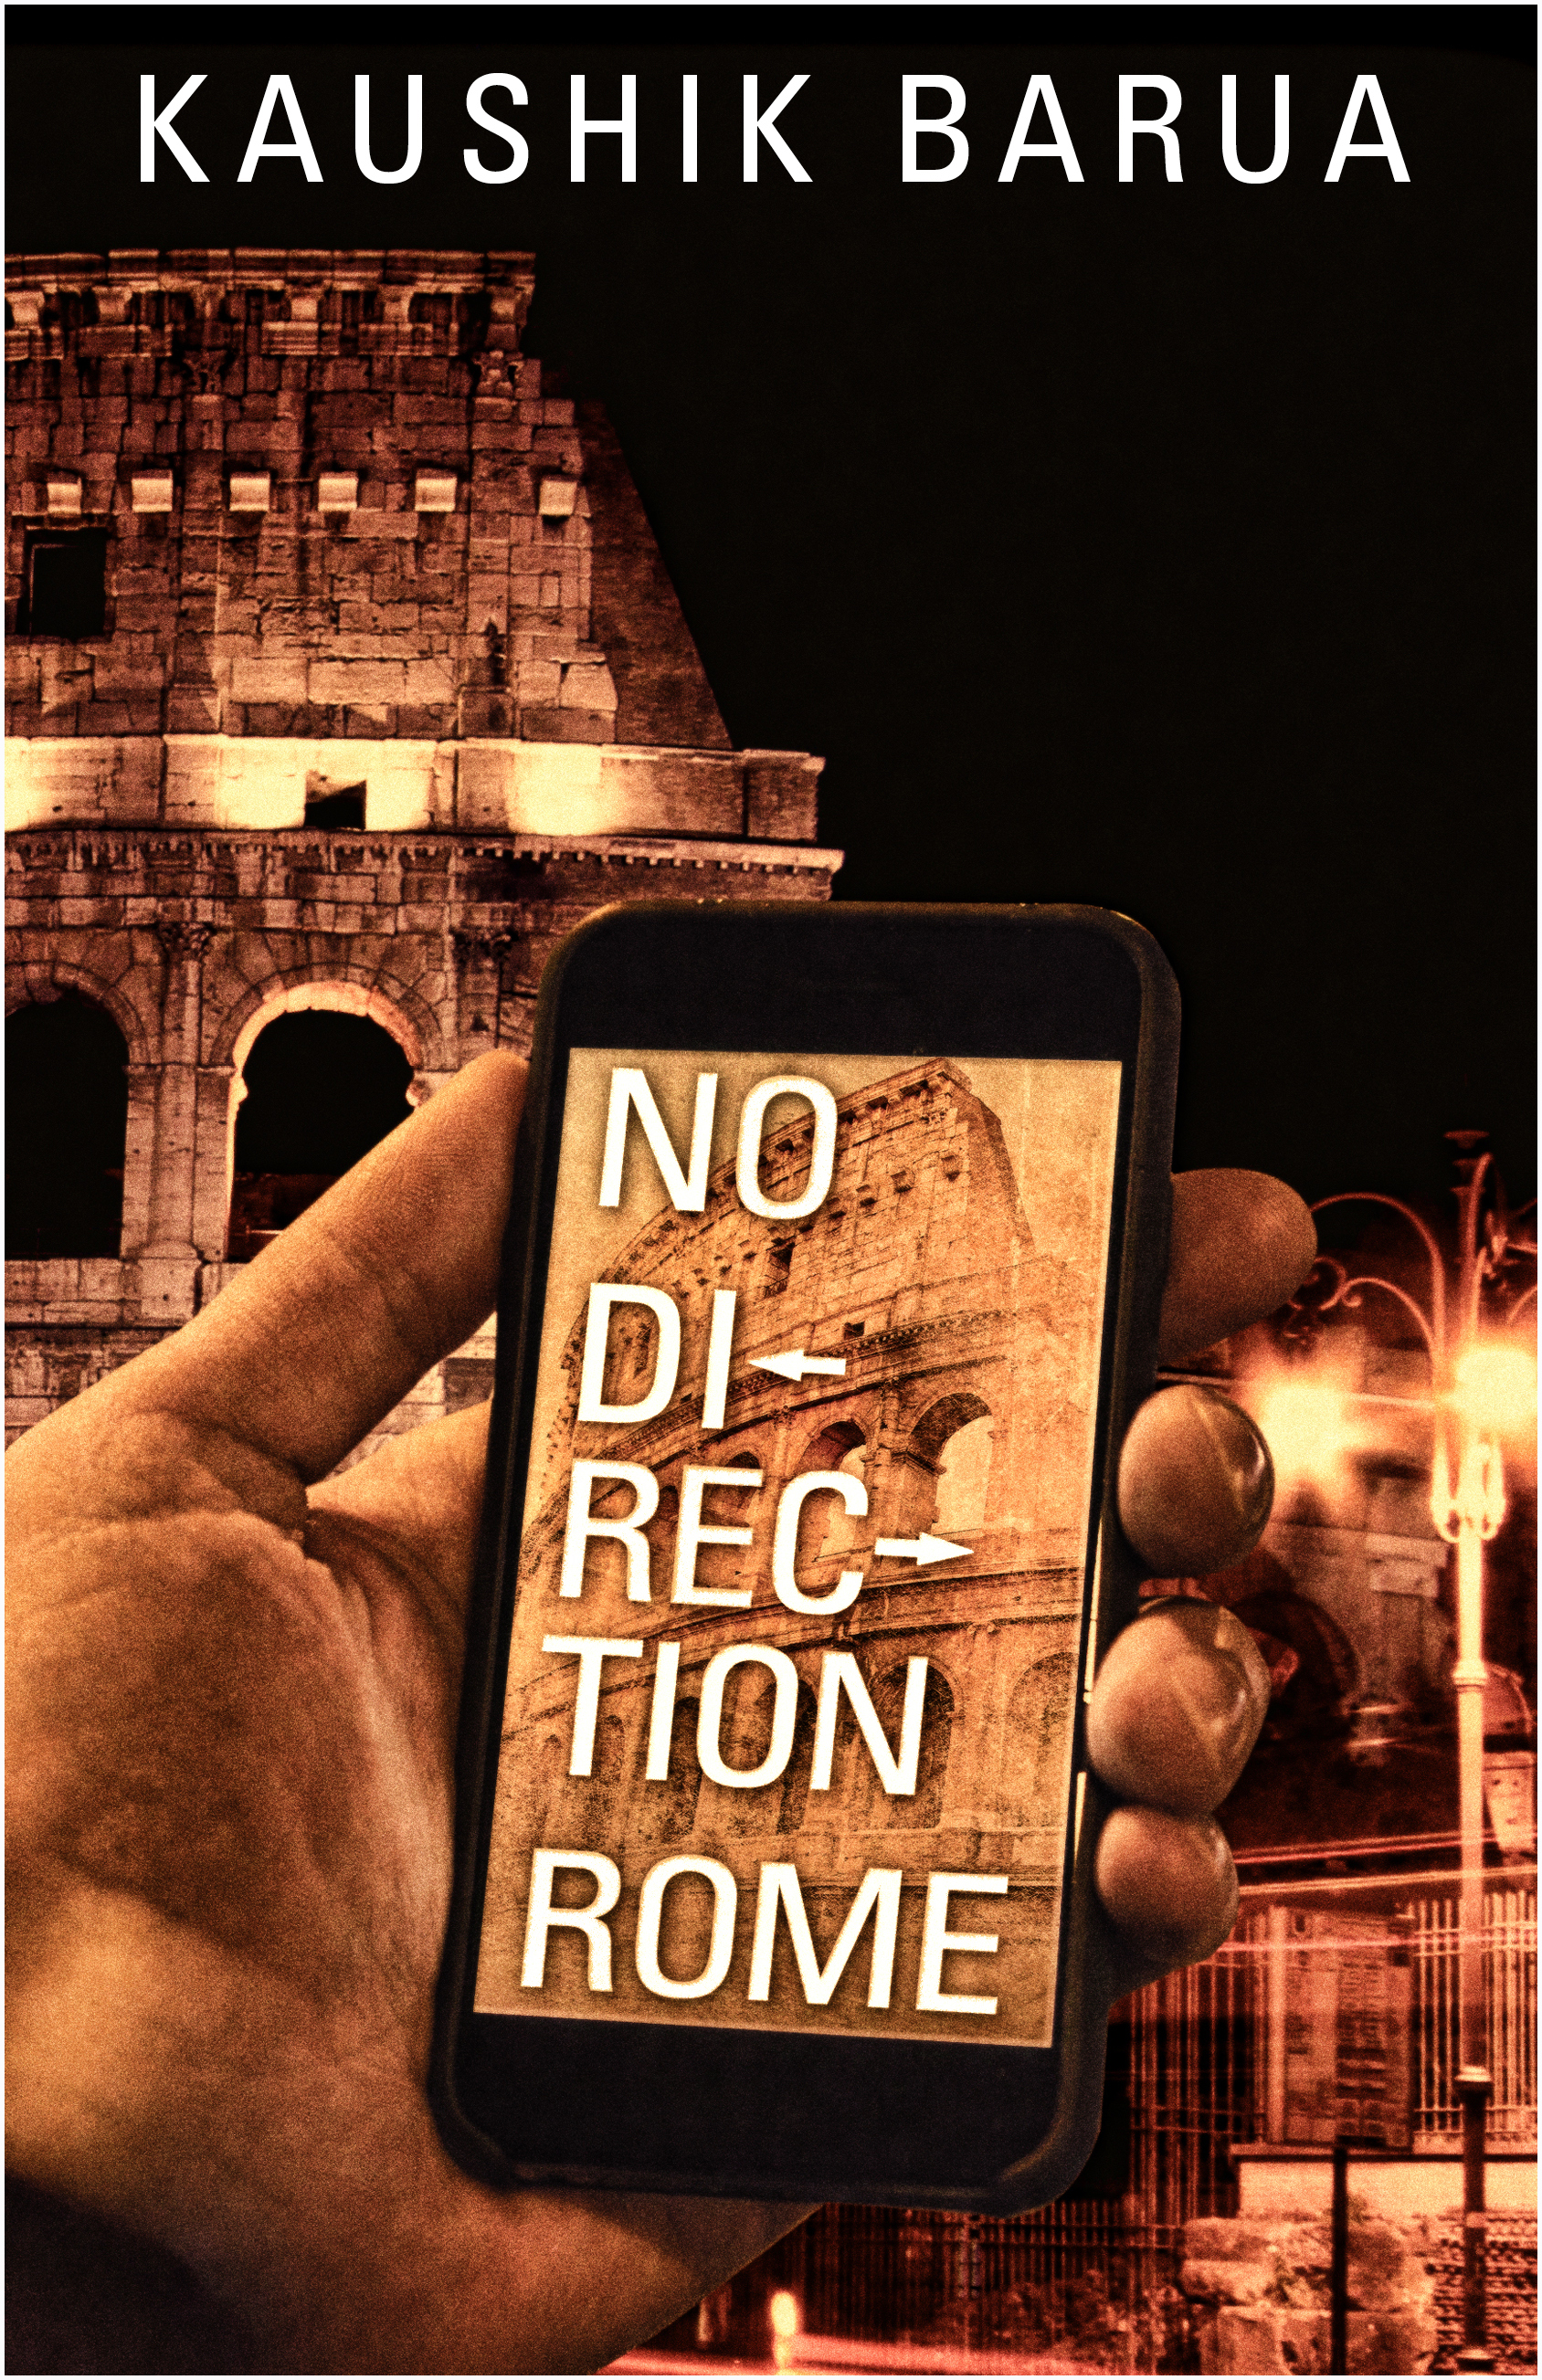 No Direction Rome